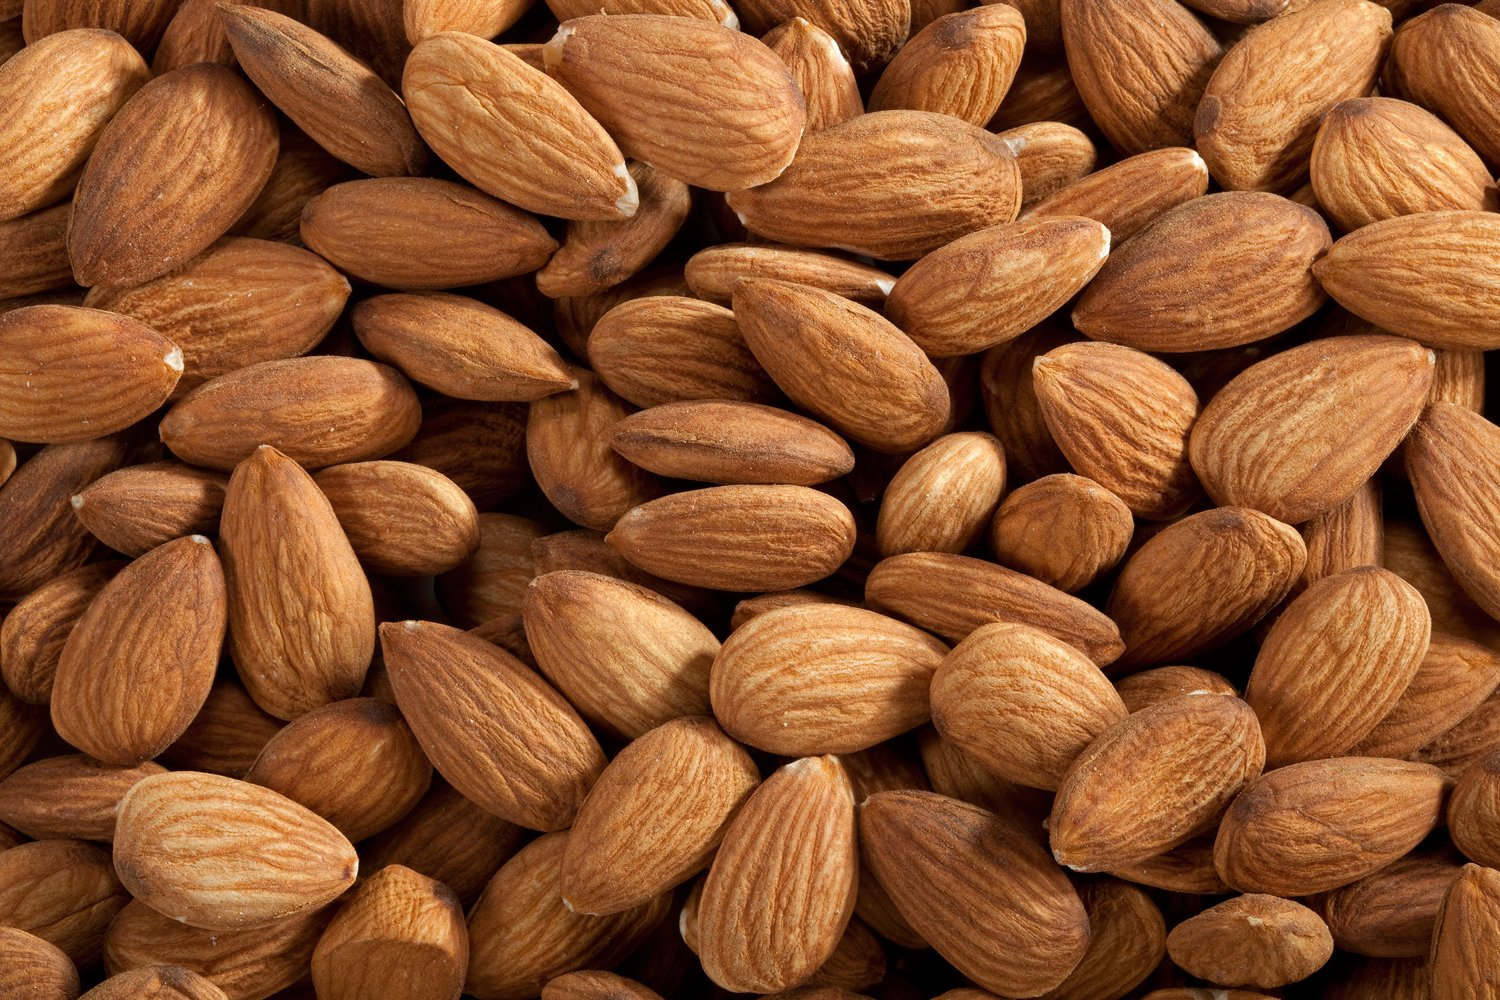 fancy-almonds-raw_4